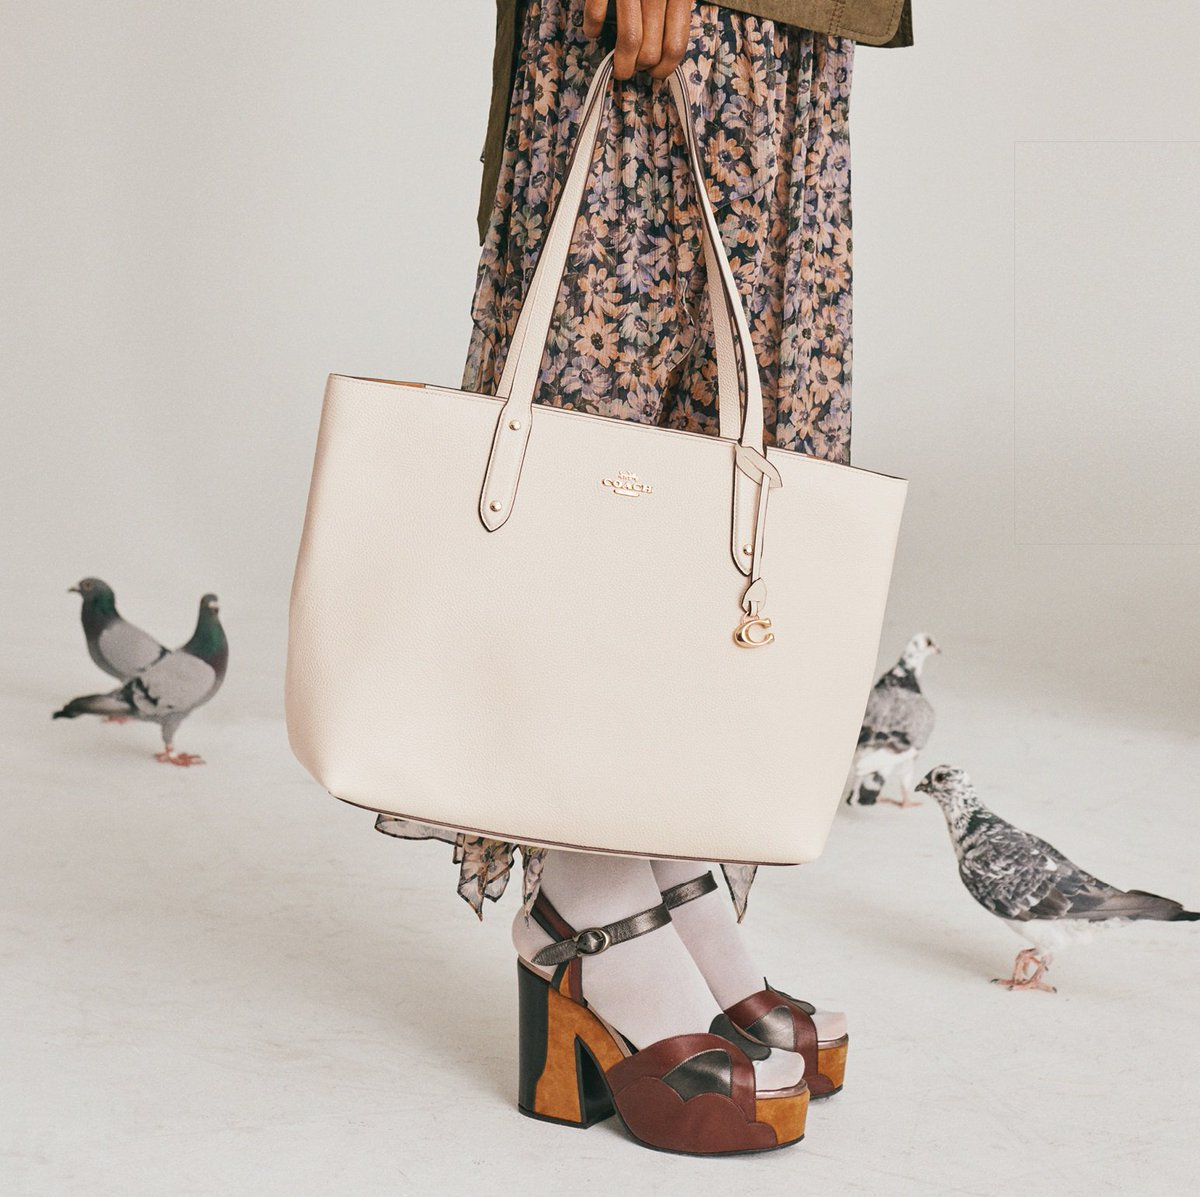 Ready, set, go. Make the Central Tote central to your summer look. http://on.coach.com/ShopTotes #CoachNY